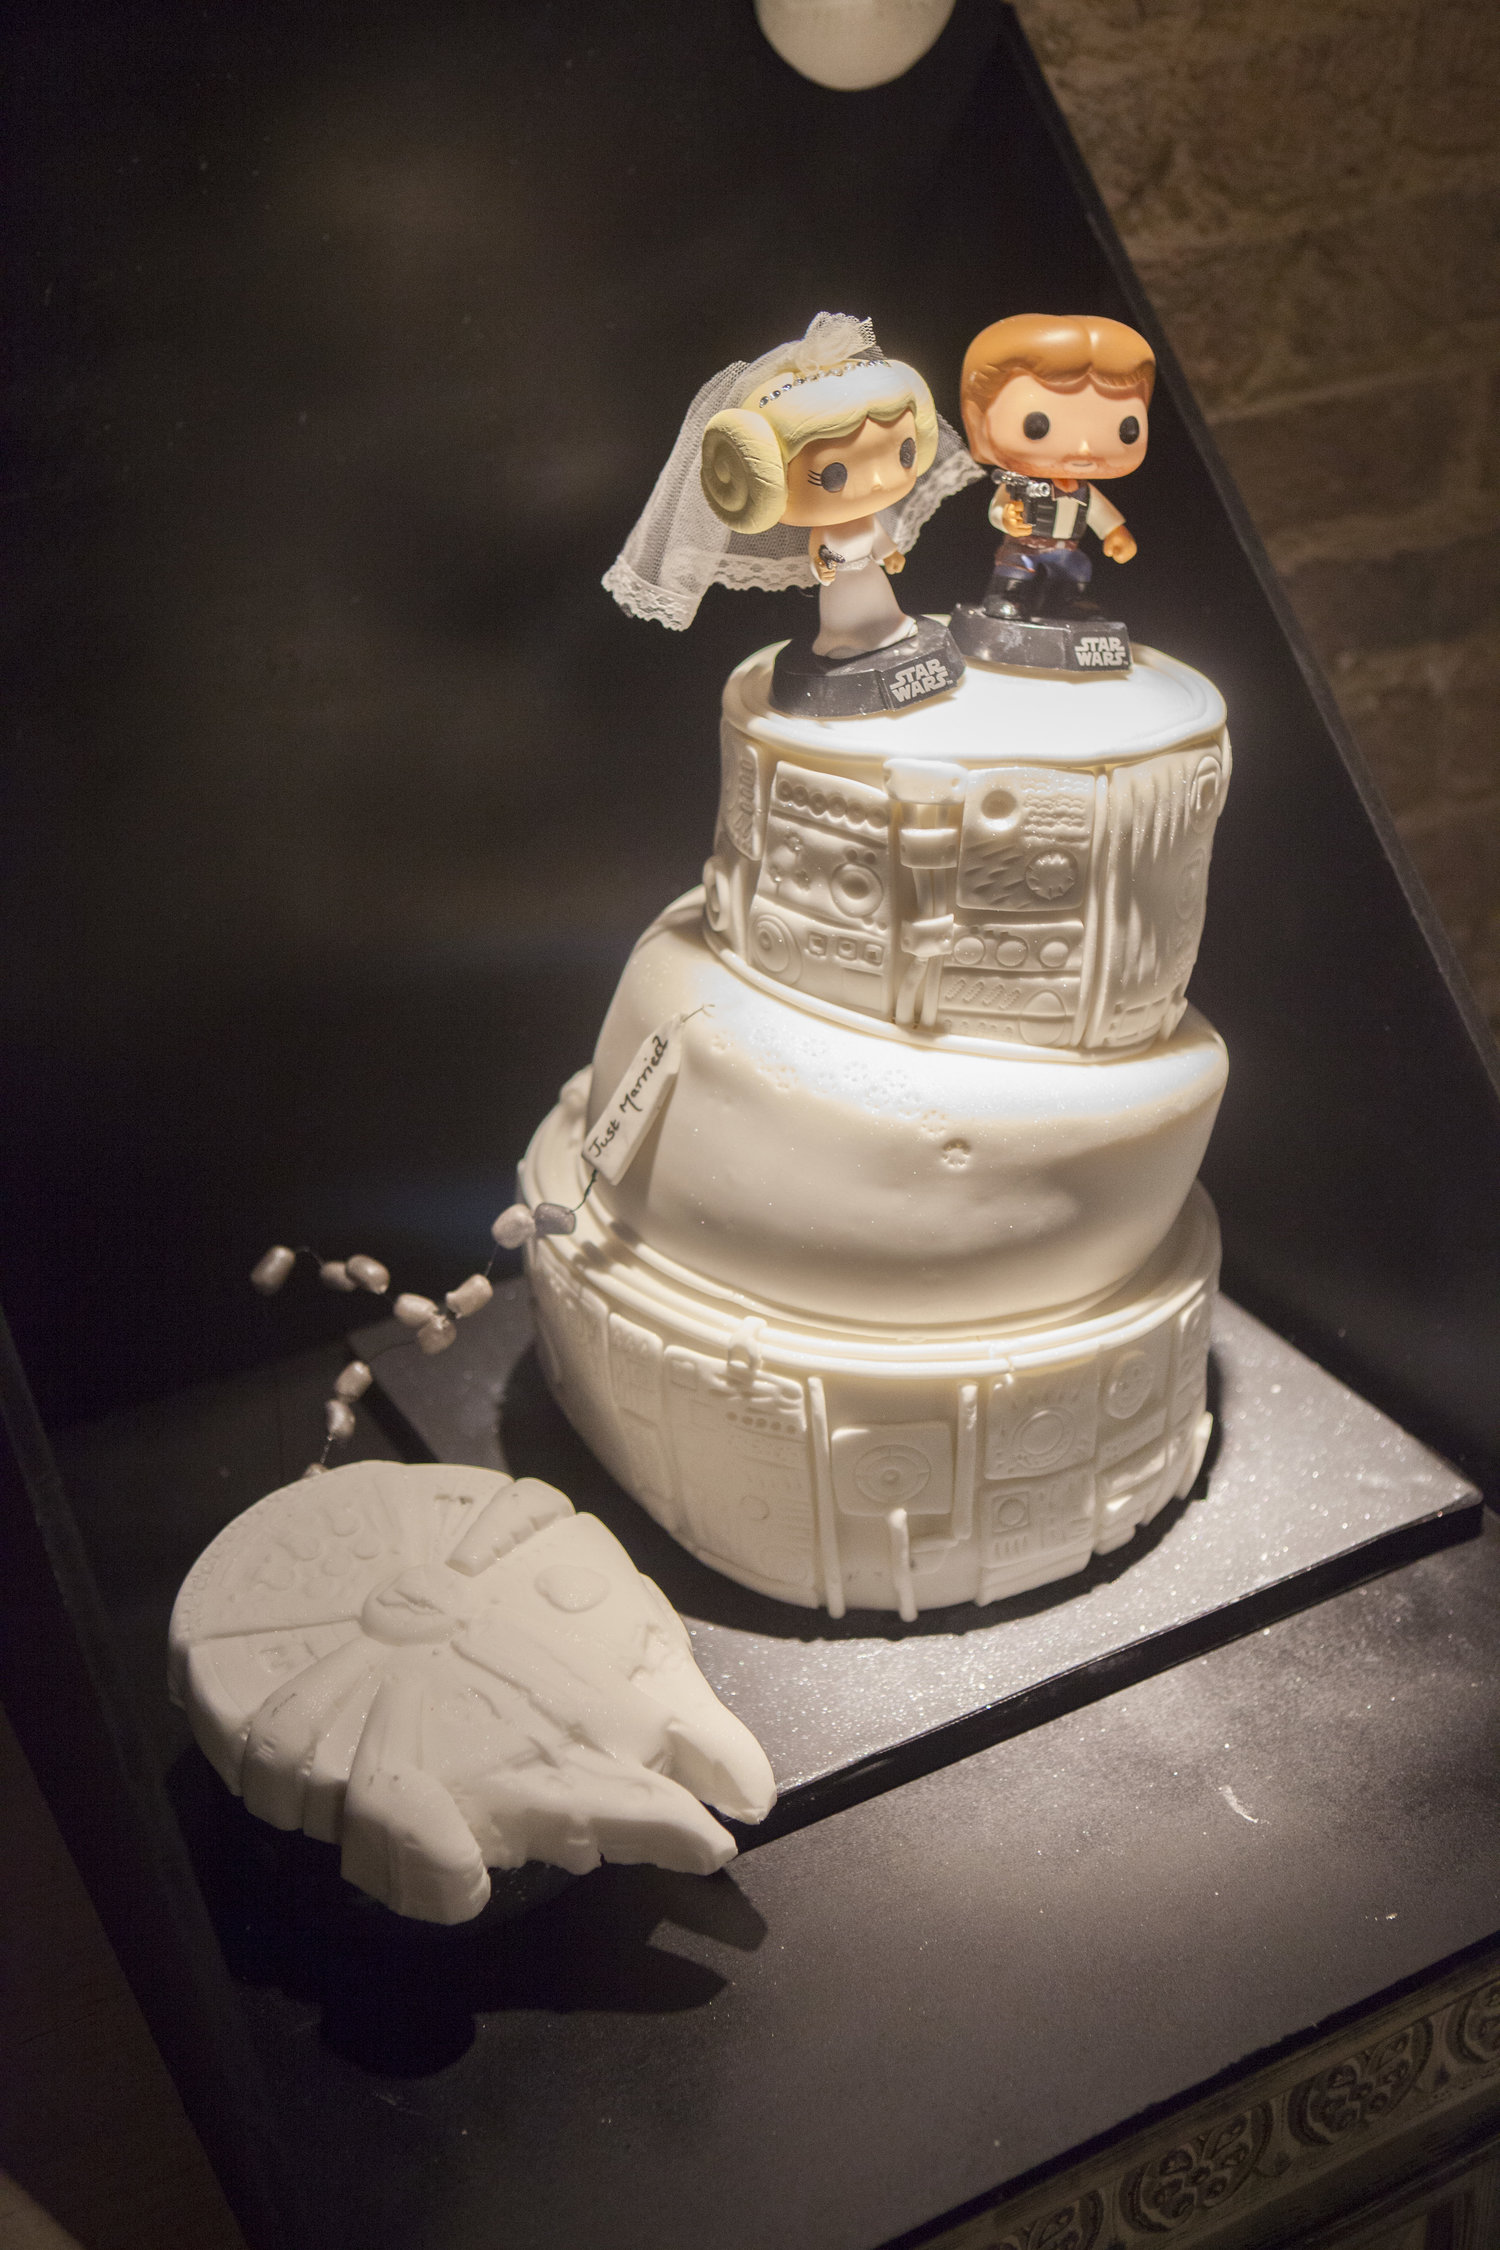 Star Wars Wedding Cake.A Star Wars Wedding Cake May The Force Be With You Professional